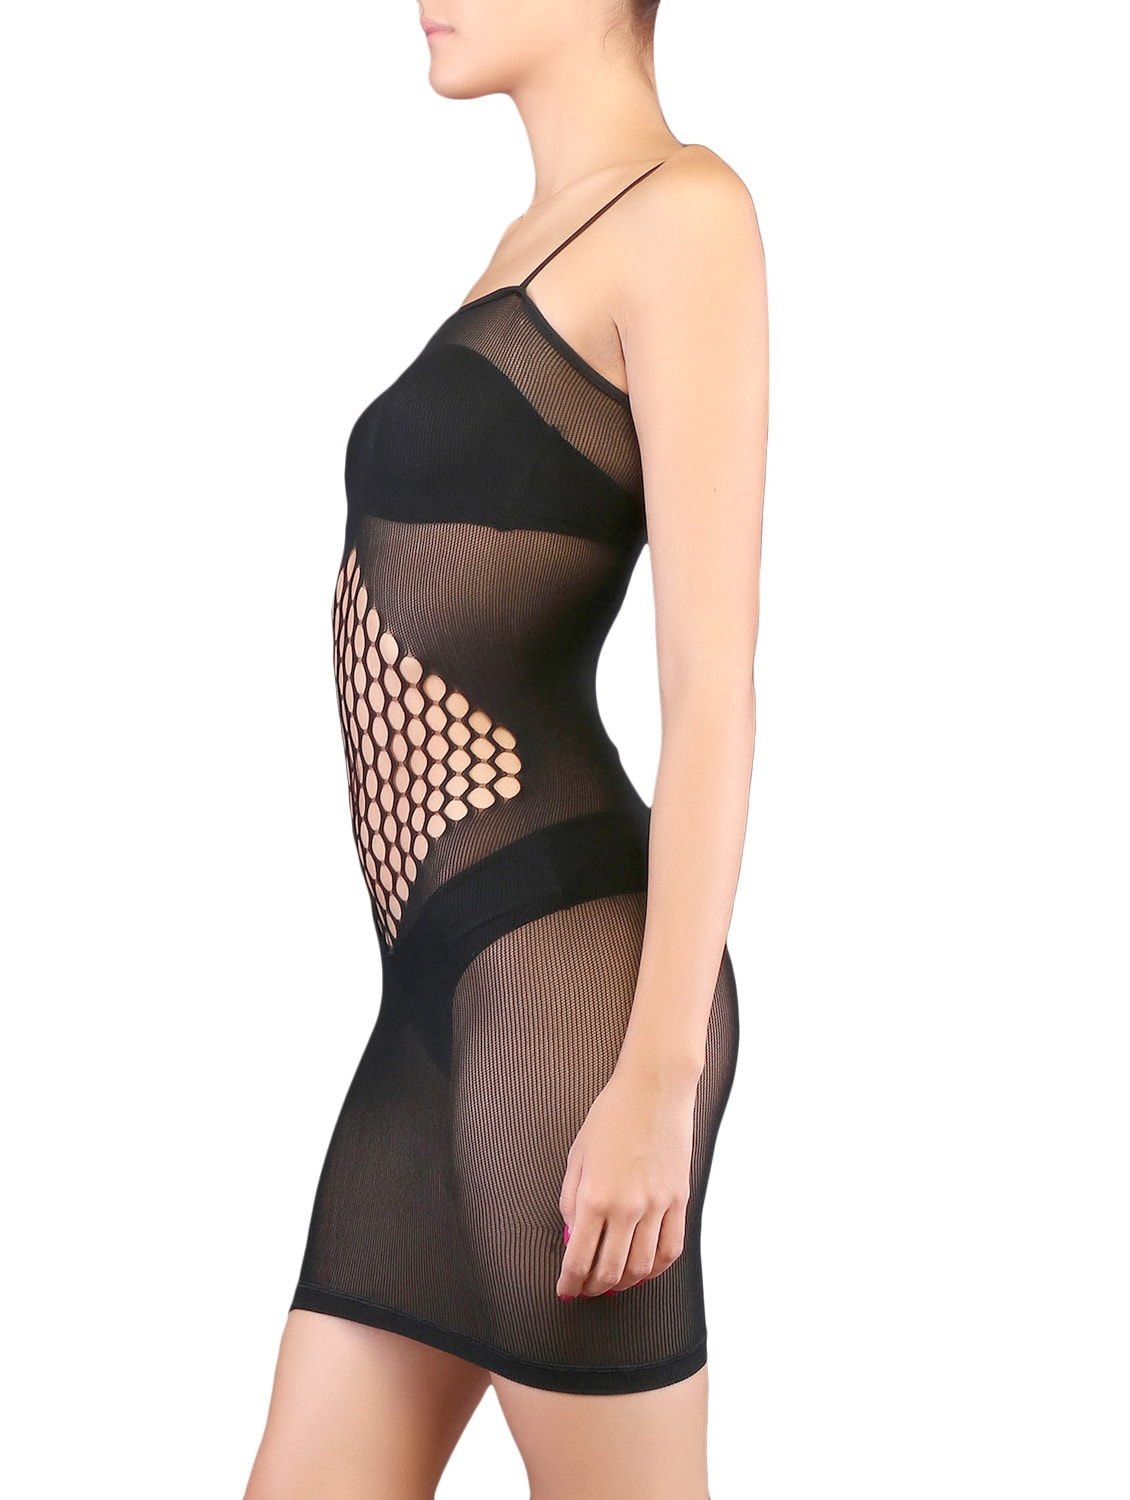 796d24a7d5b Buy Black Cut Work Synthetic Body Stocking for Women from Kaamastra for  ₹641 at 53% off